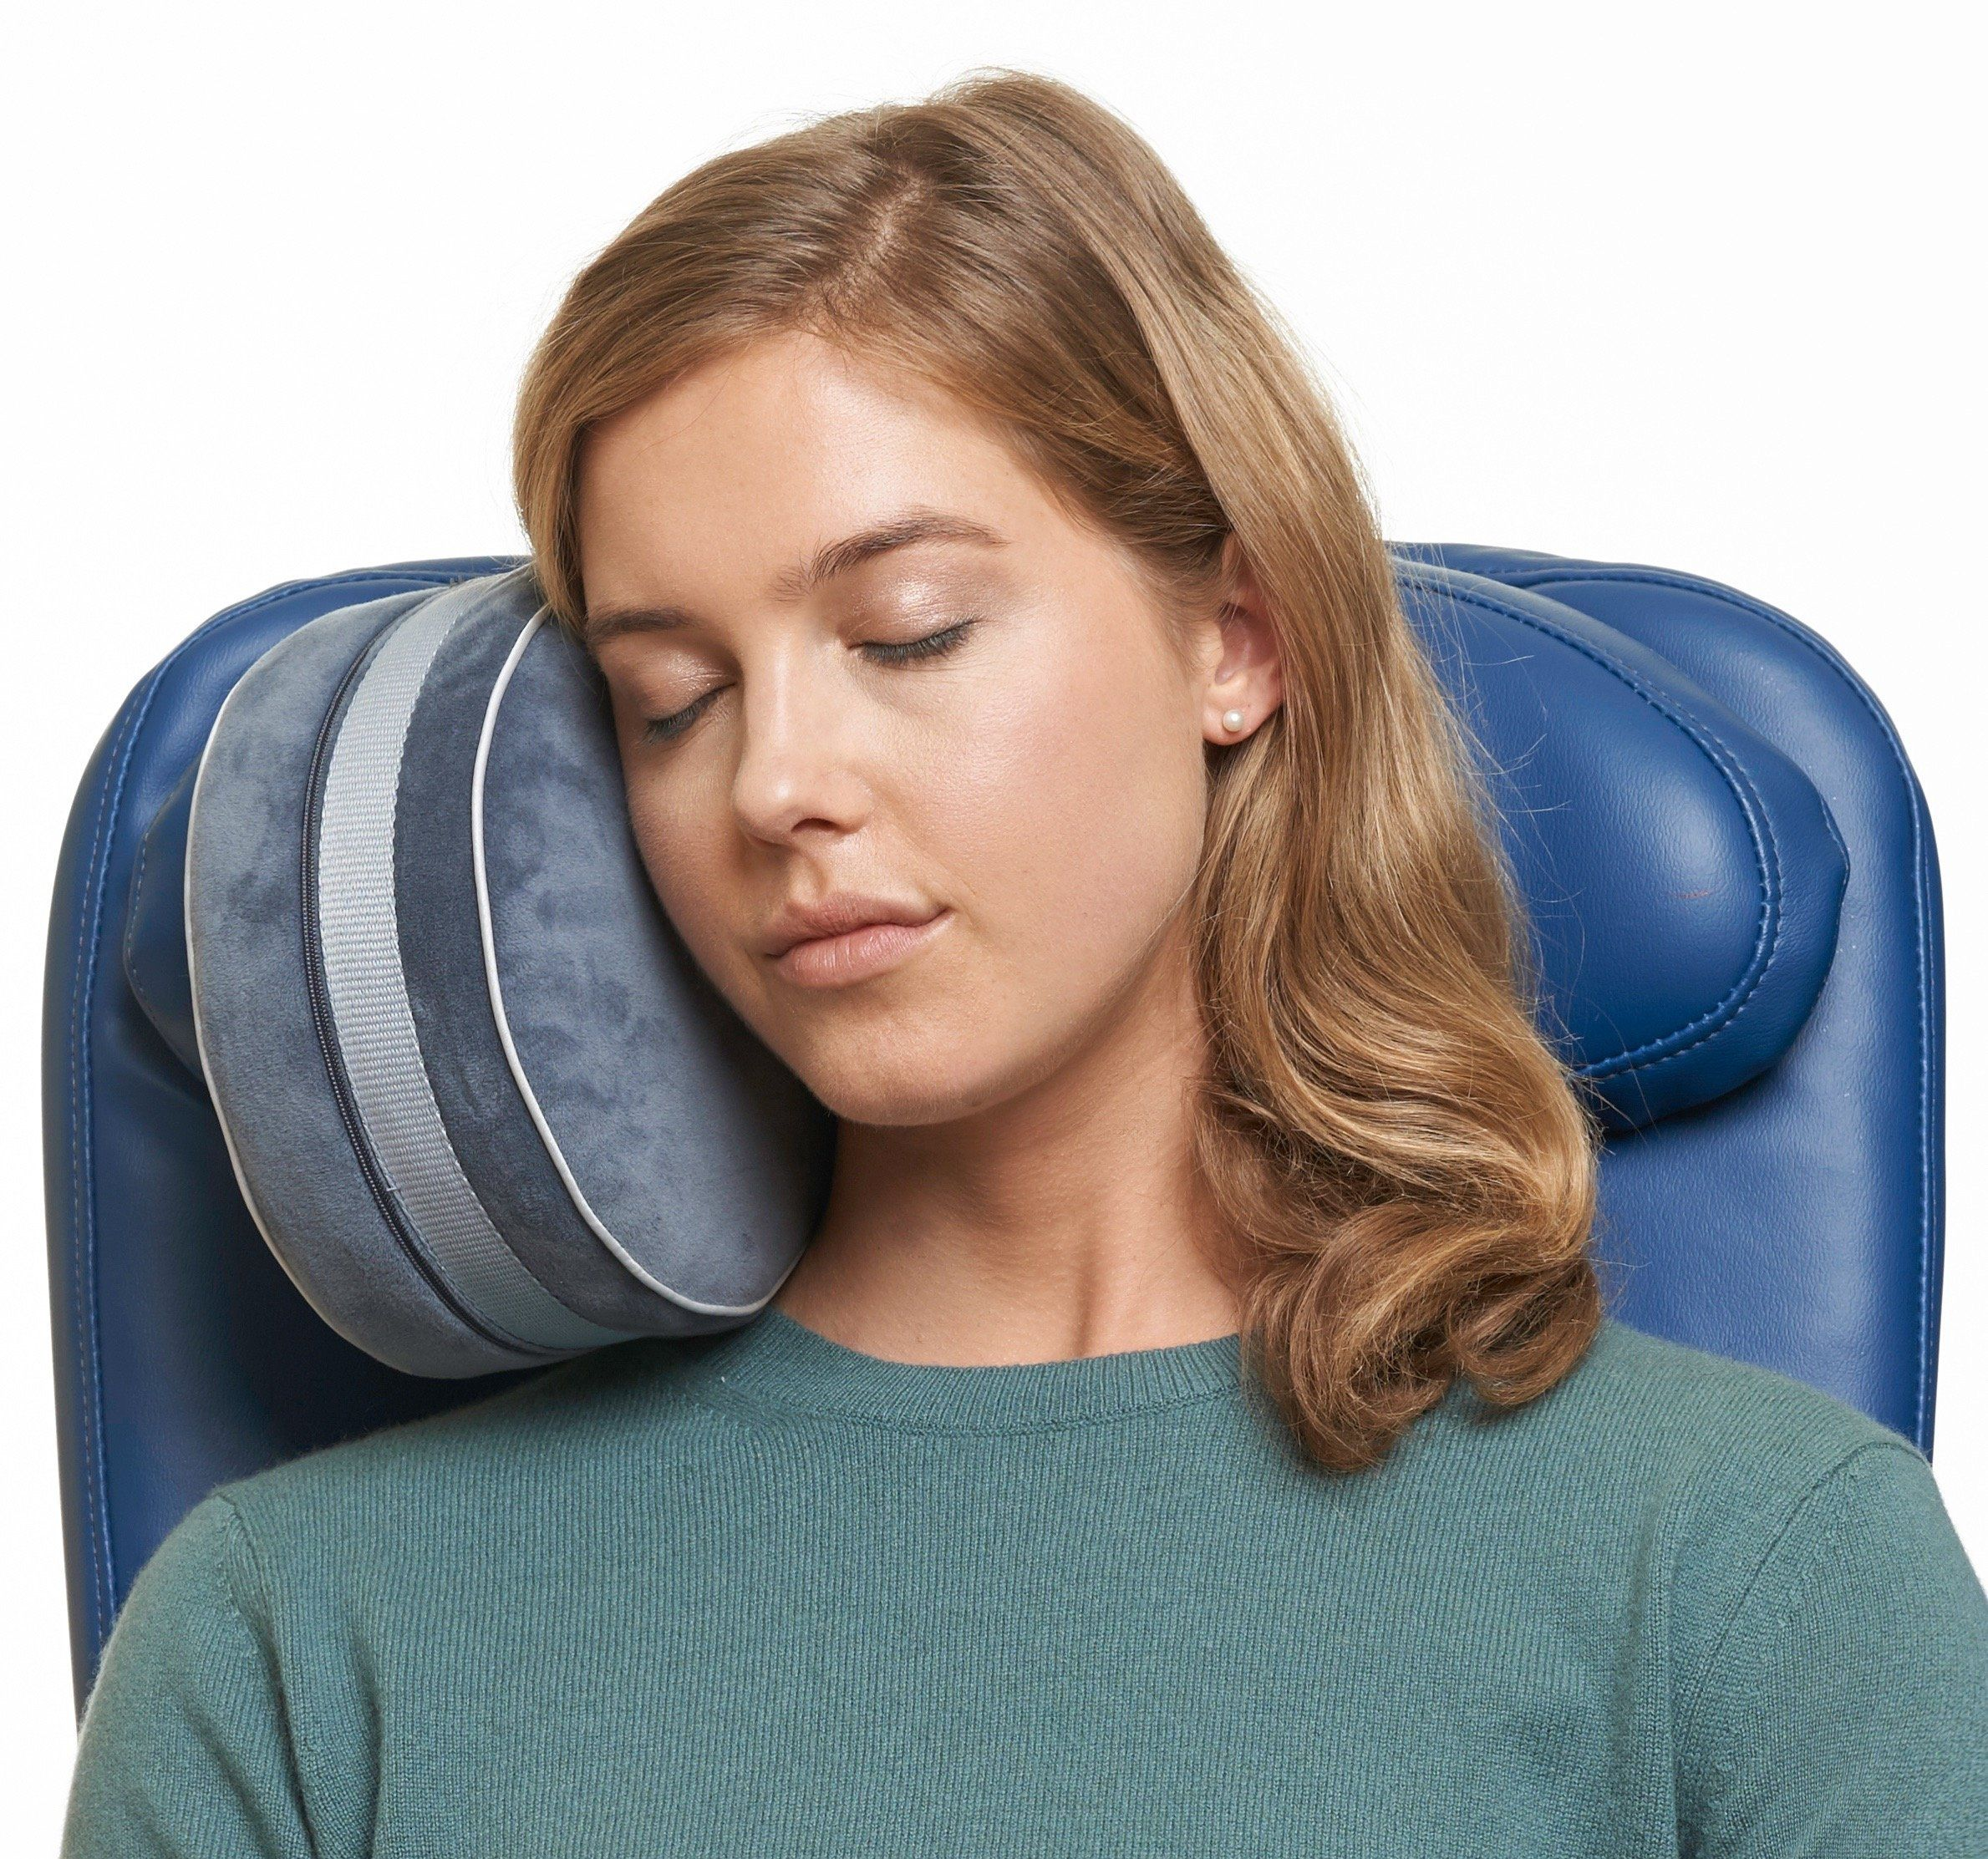 and air support airplane pillows neck compact pin trekology pillow travel for head ultralight